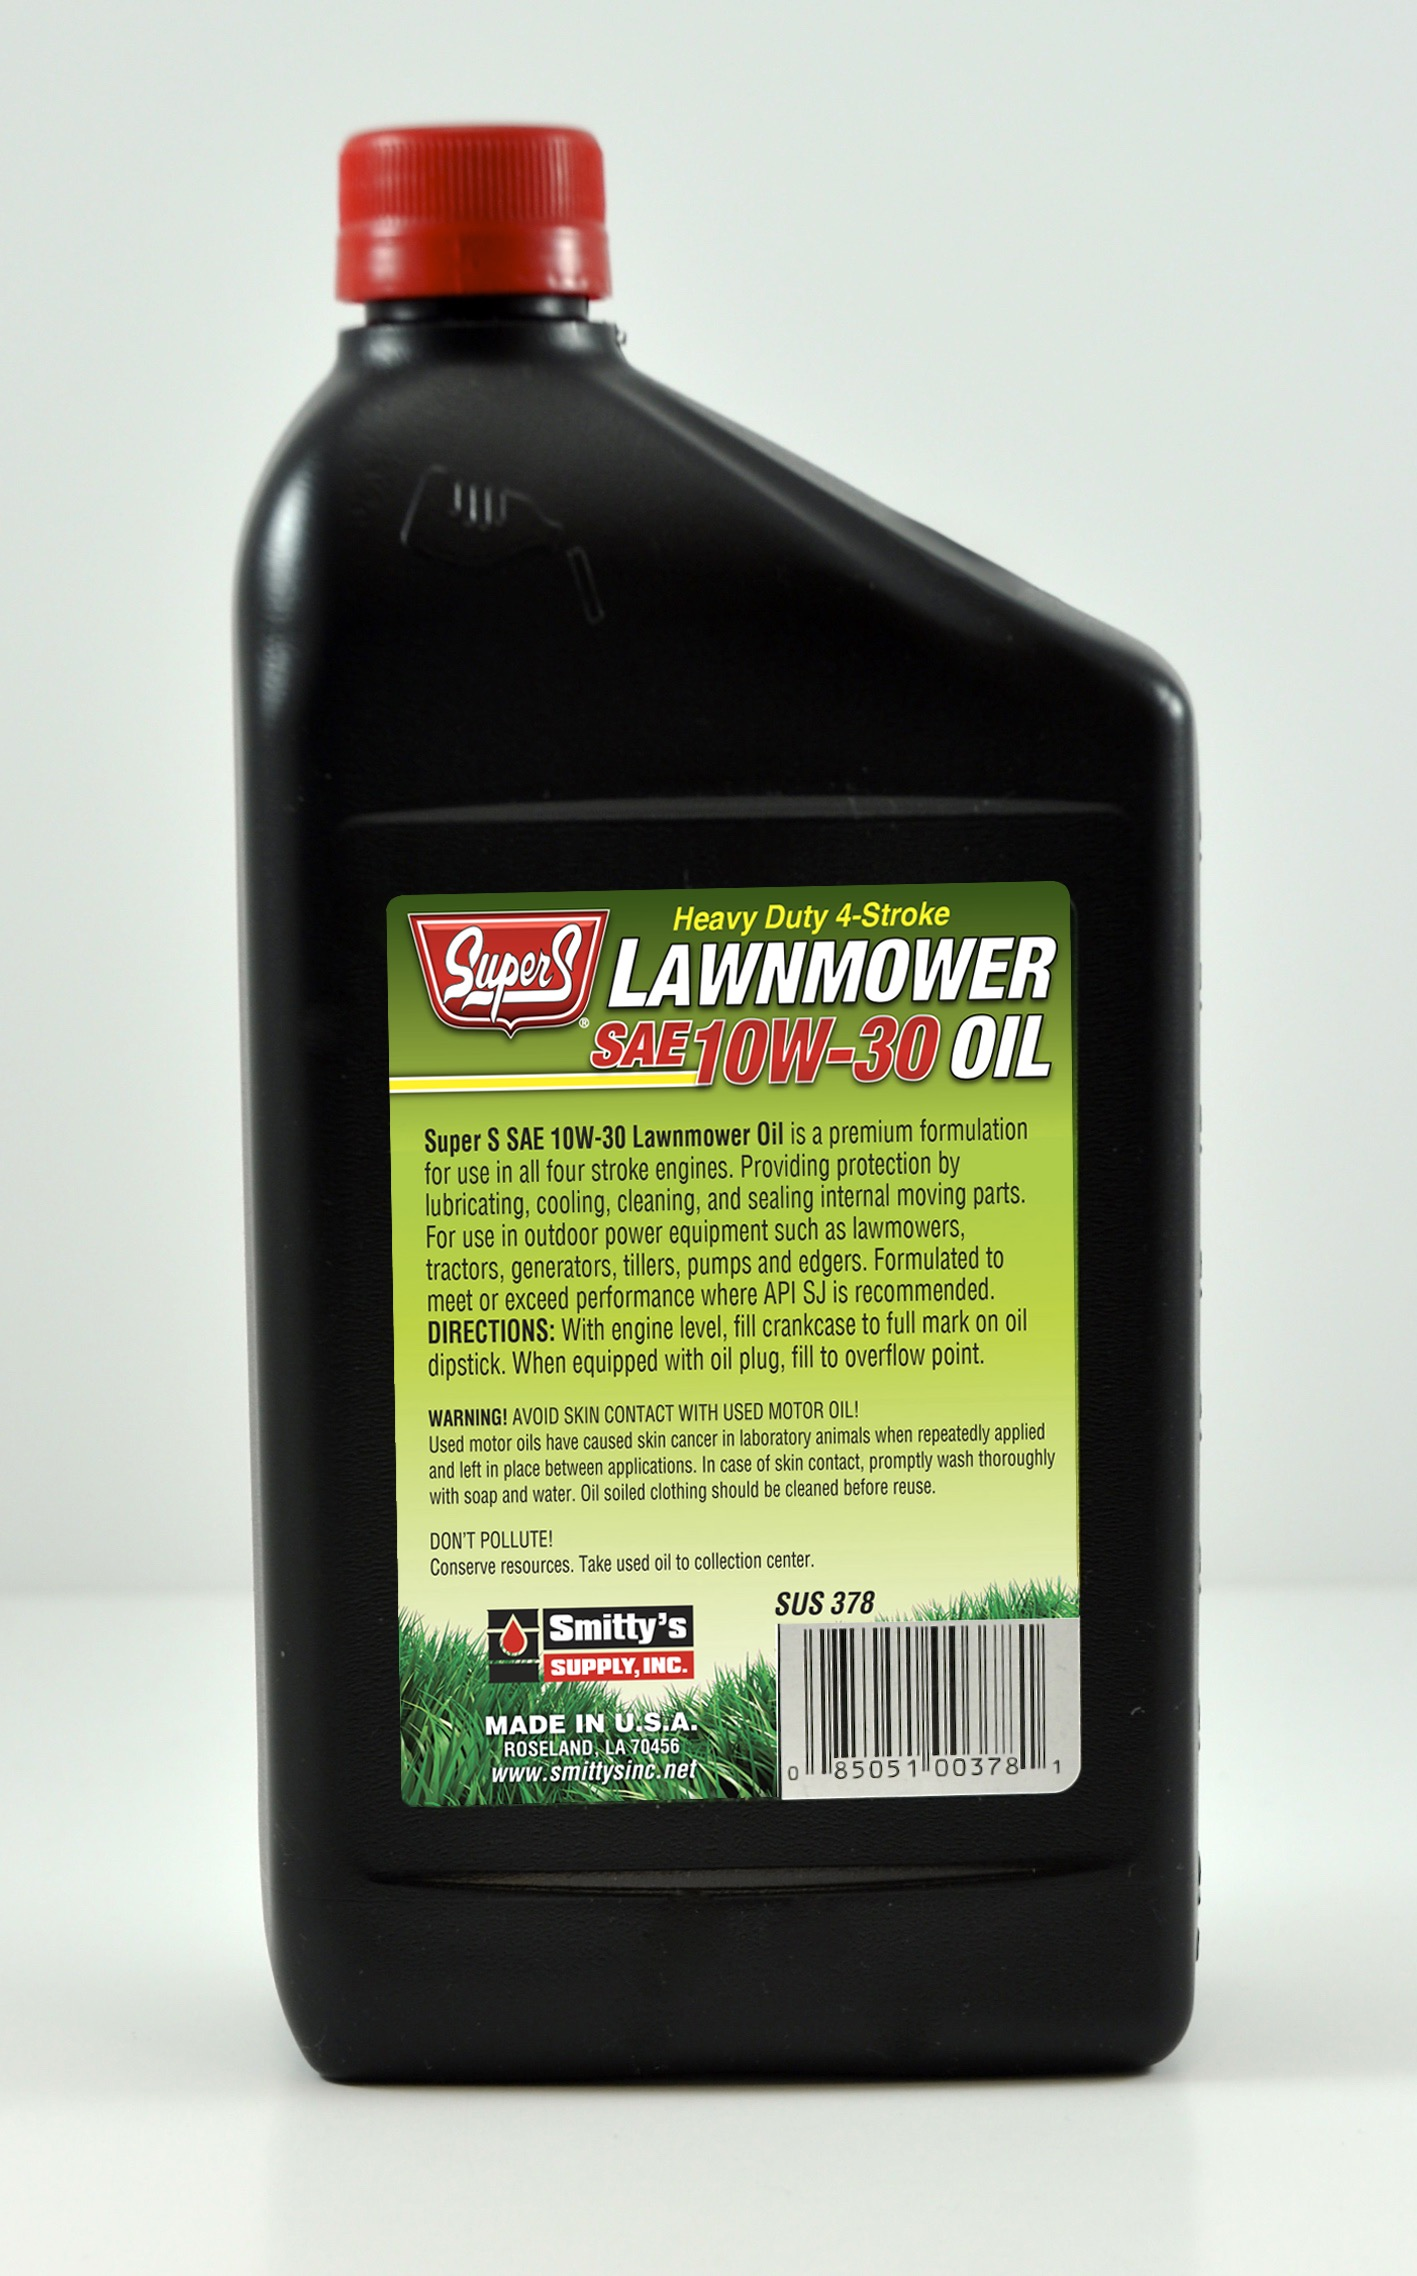 Super S 32 oz. 10W30 Lawnmower Oil